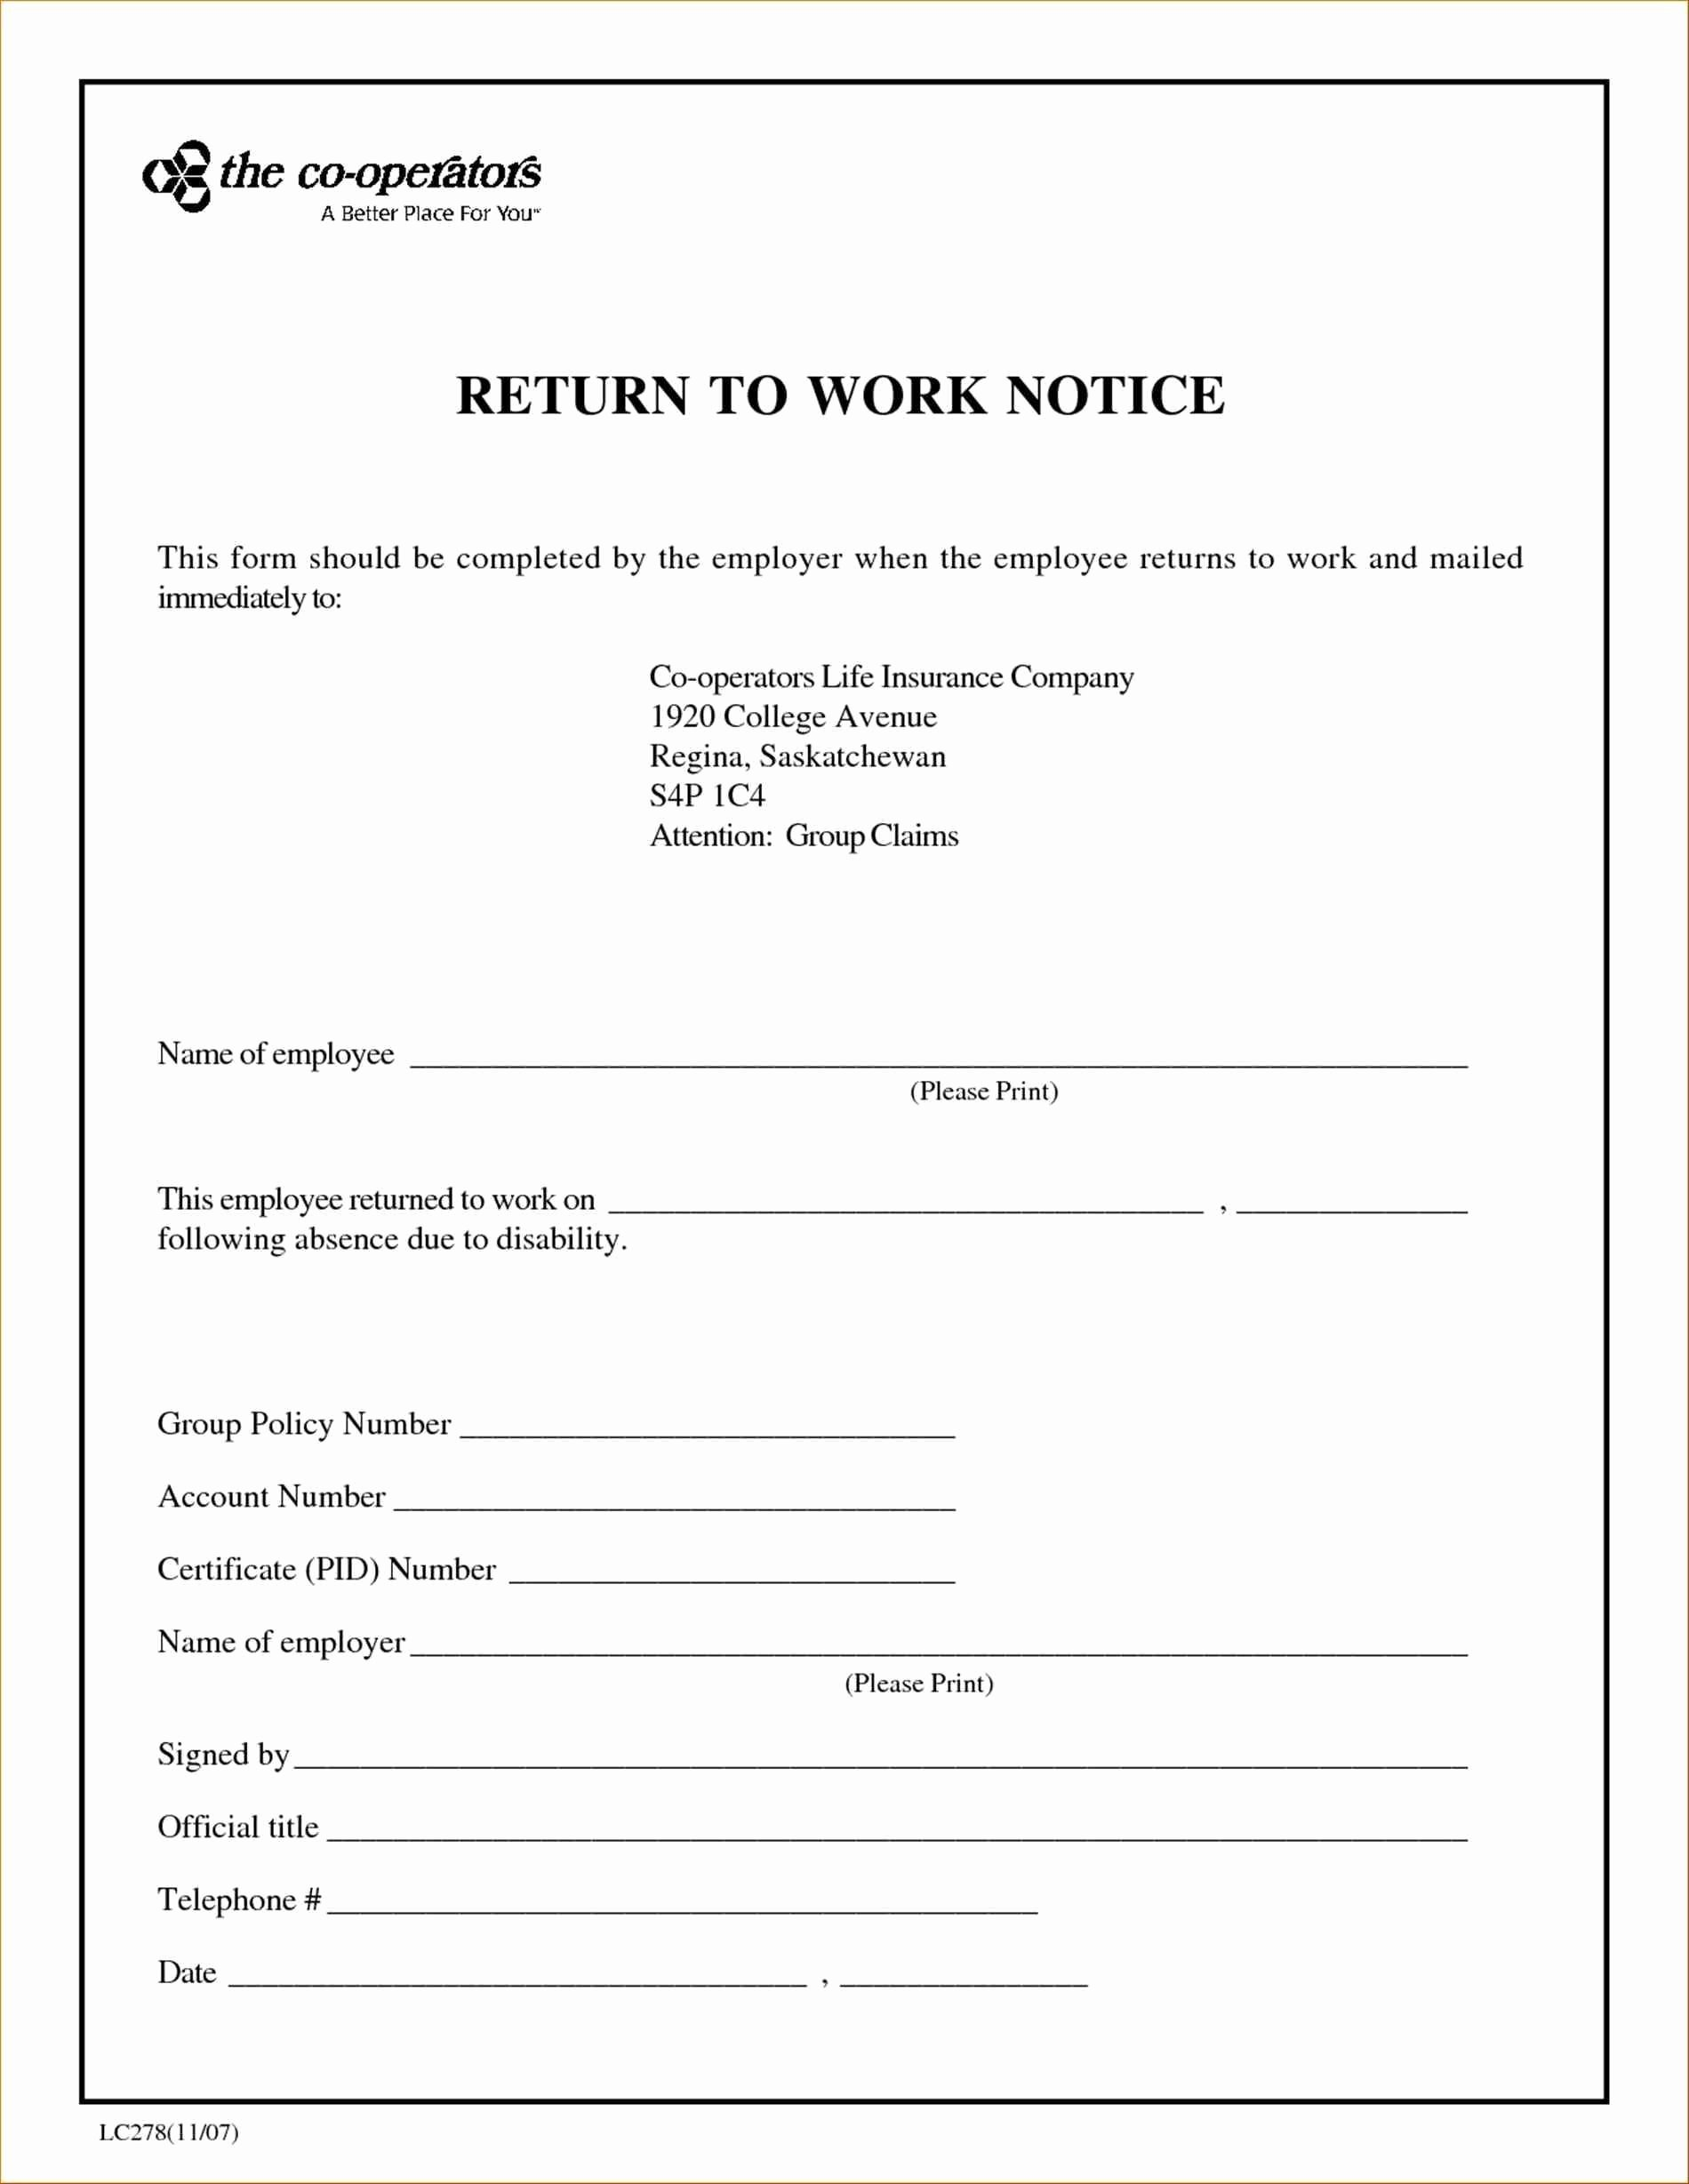 Drs Excuse Note Template Beautiful Return to Work Doctors Note Template